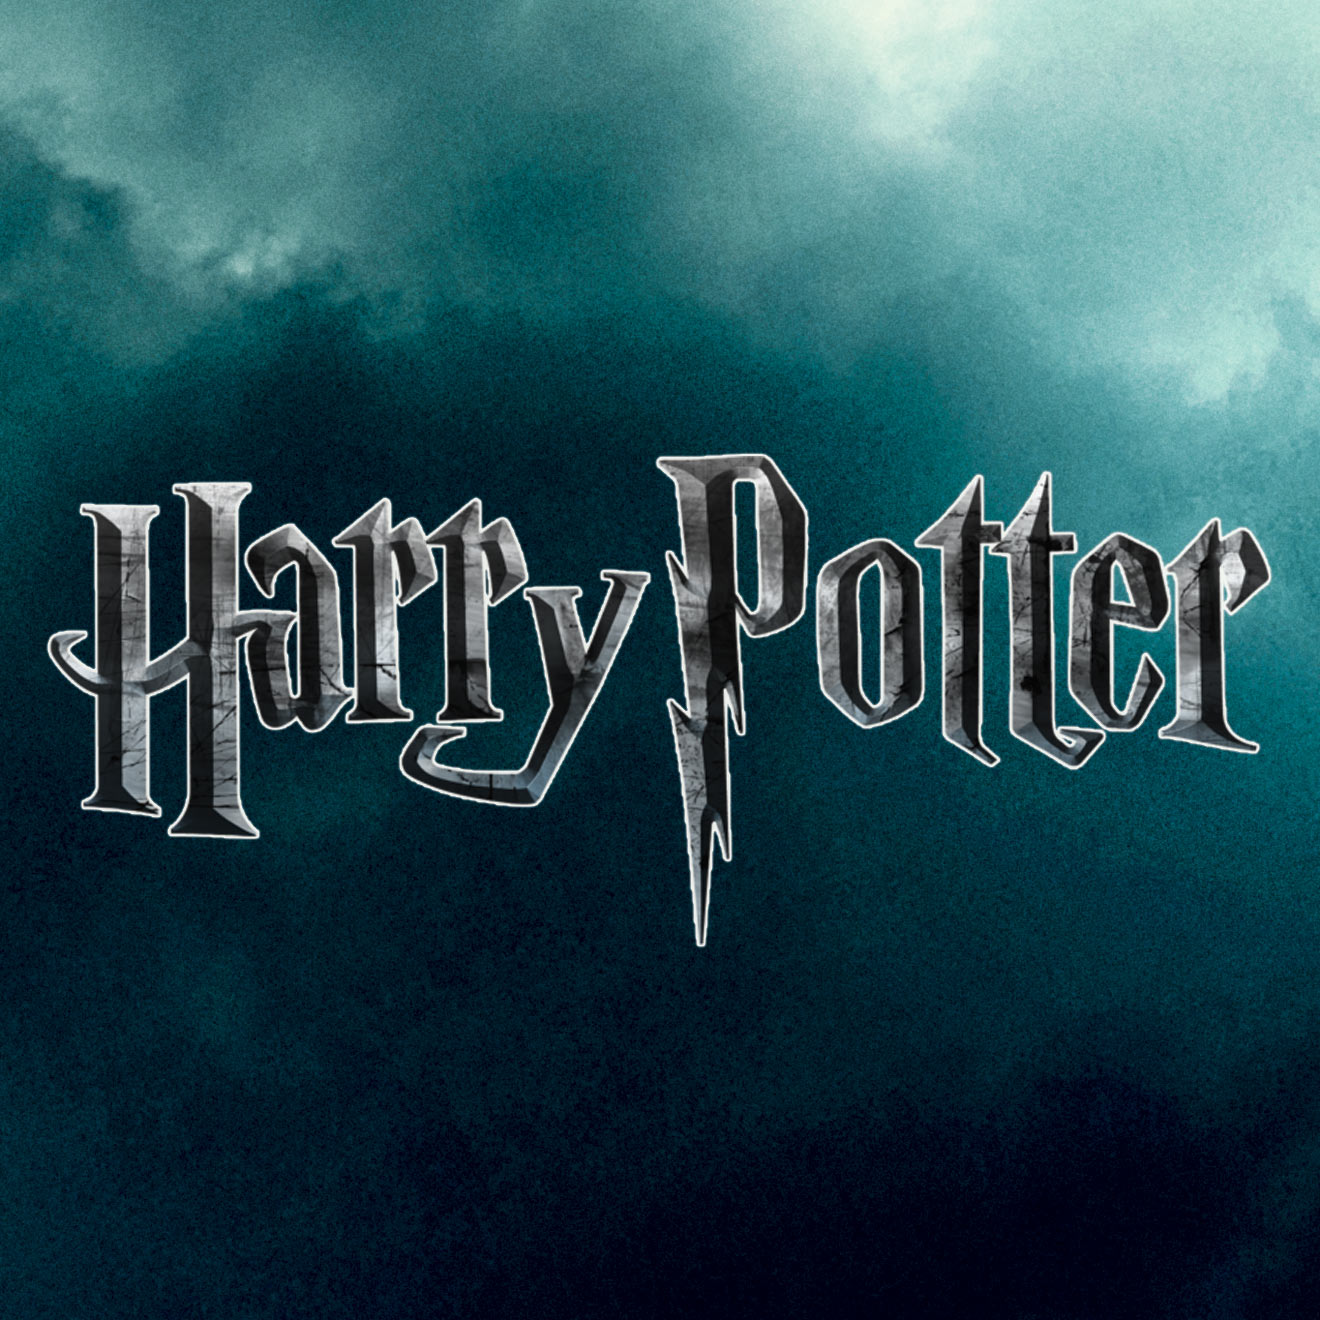 Harry Potter: Reunion geplant!